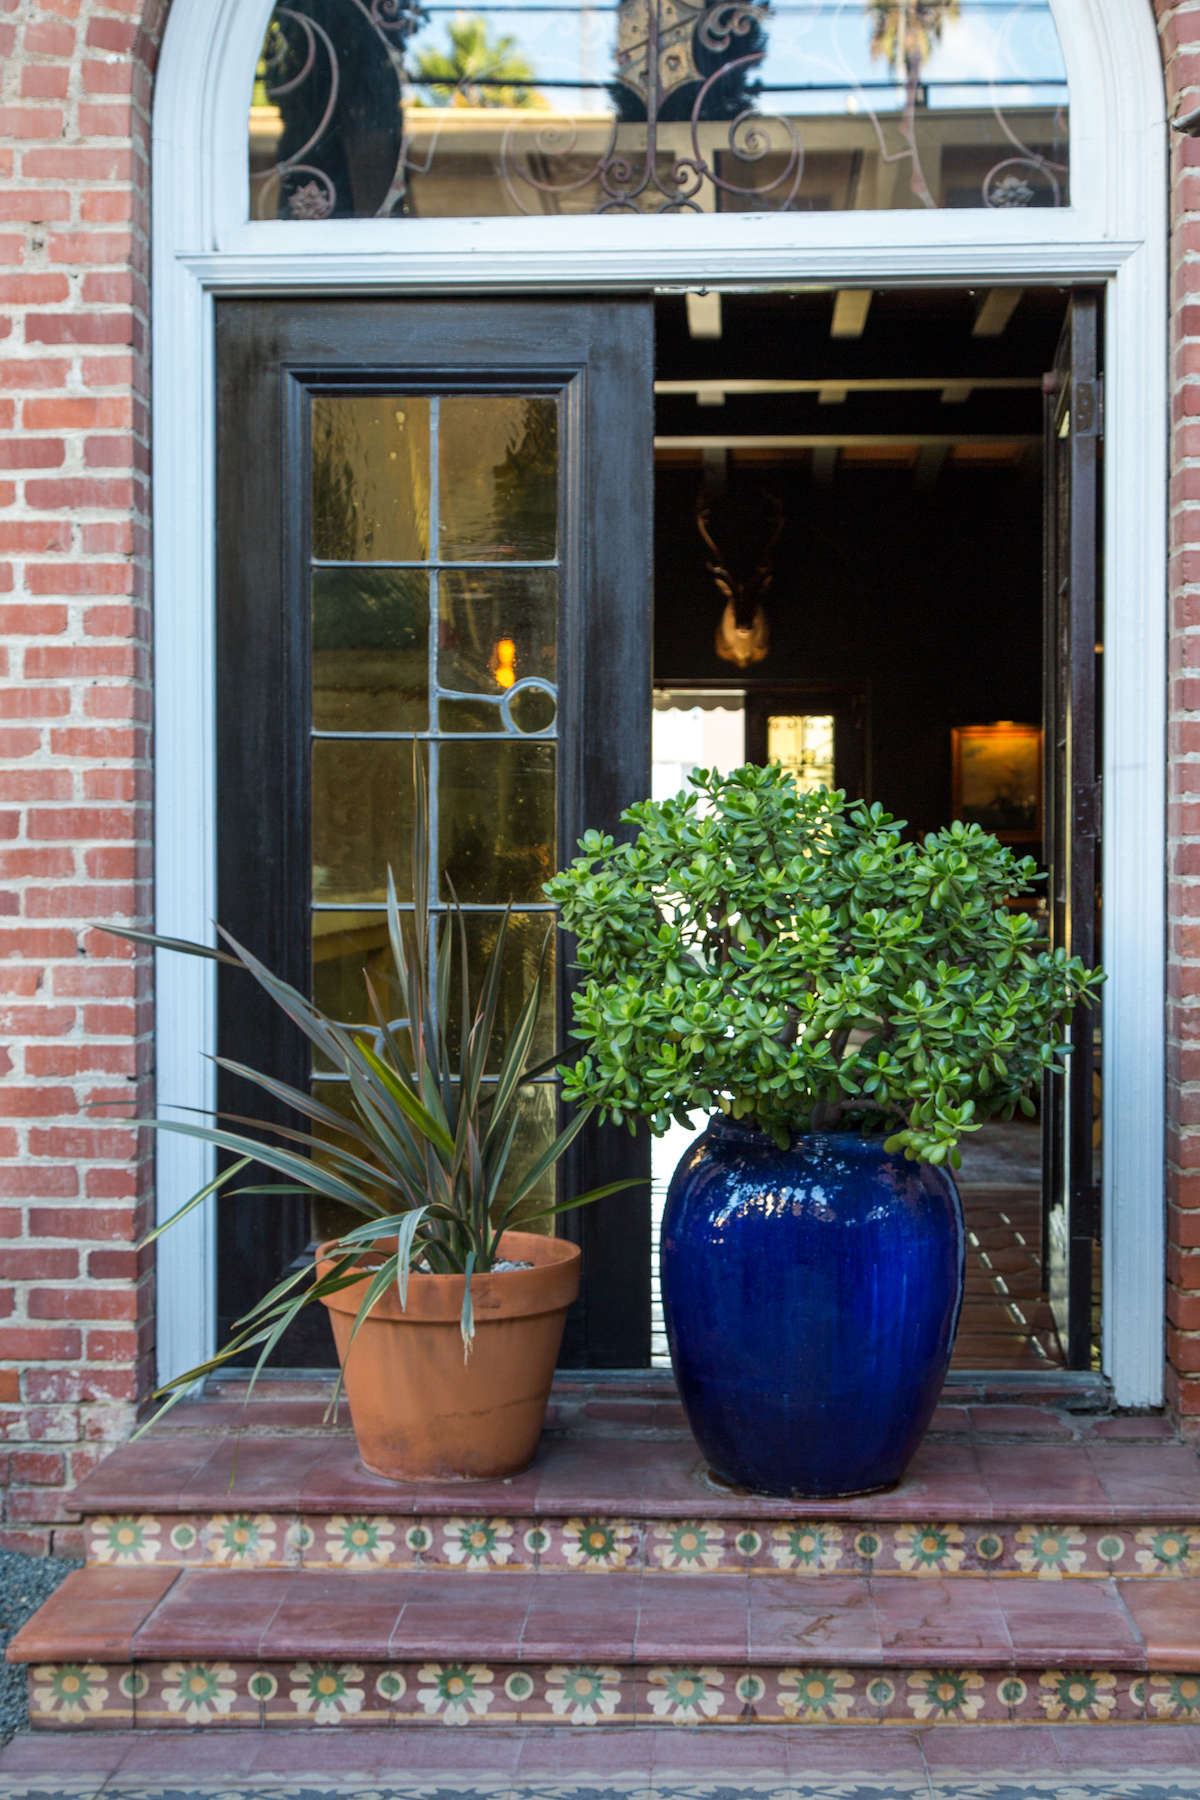 Potted container plants in front of door on outdoor patio